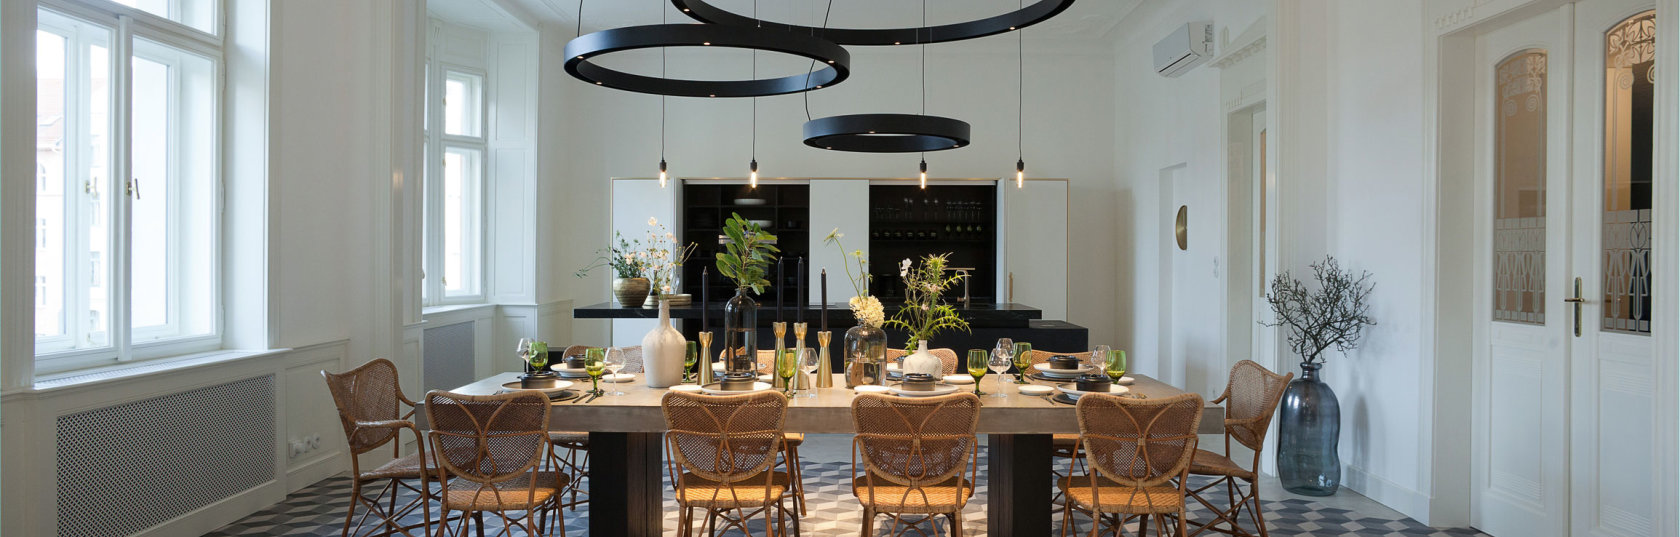 Lighting design: different style ideas for lighting above your dining table